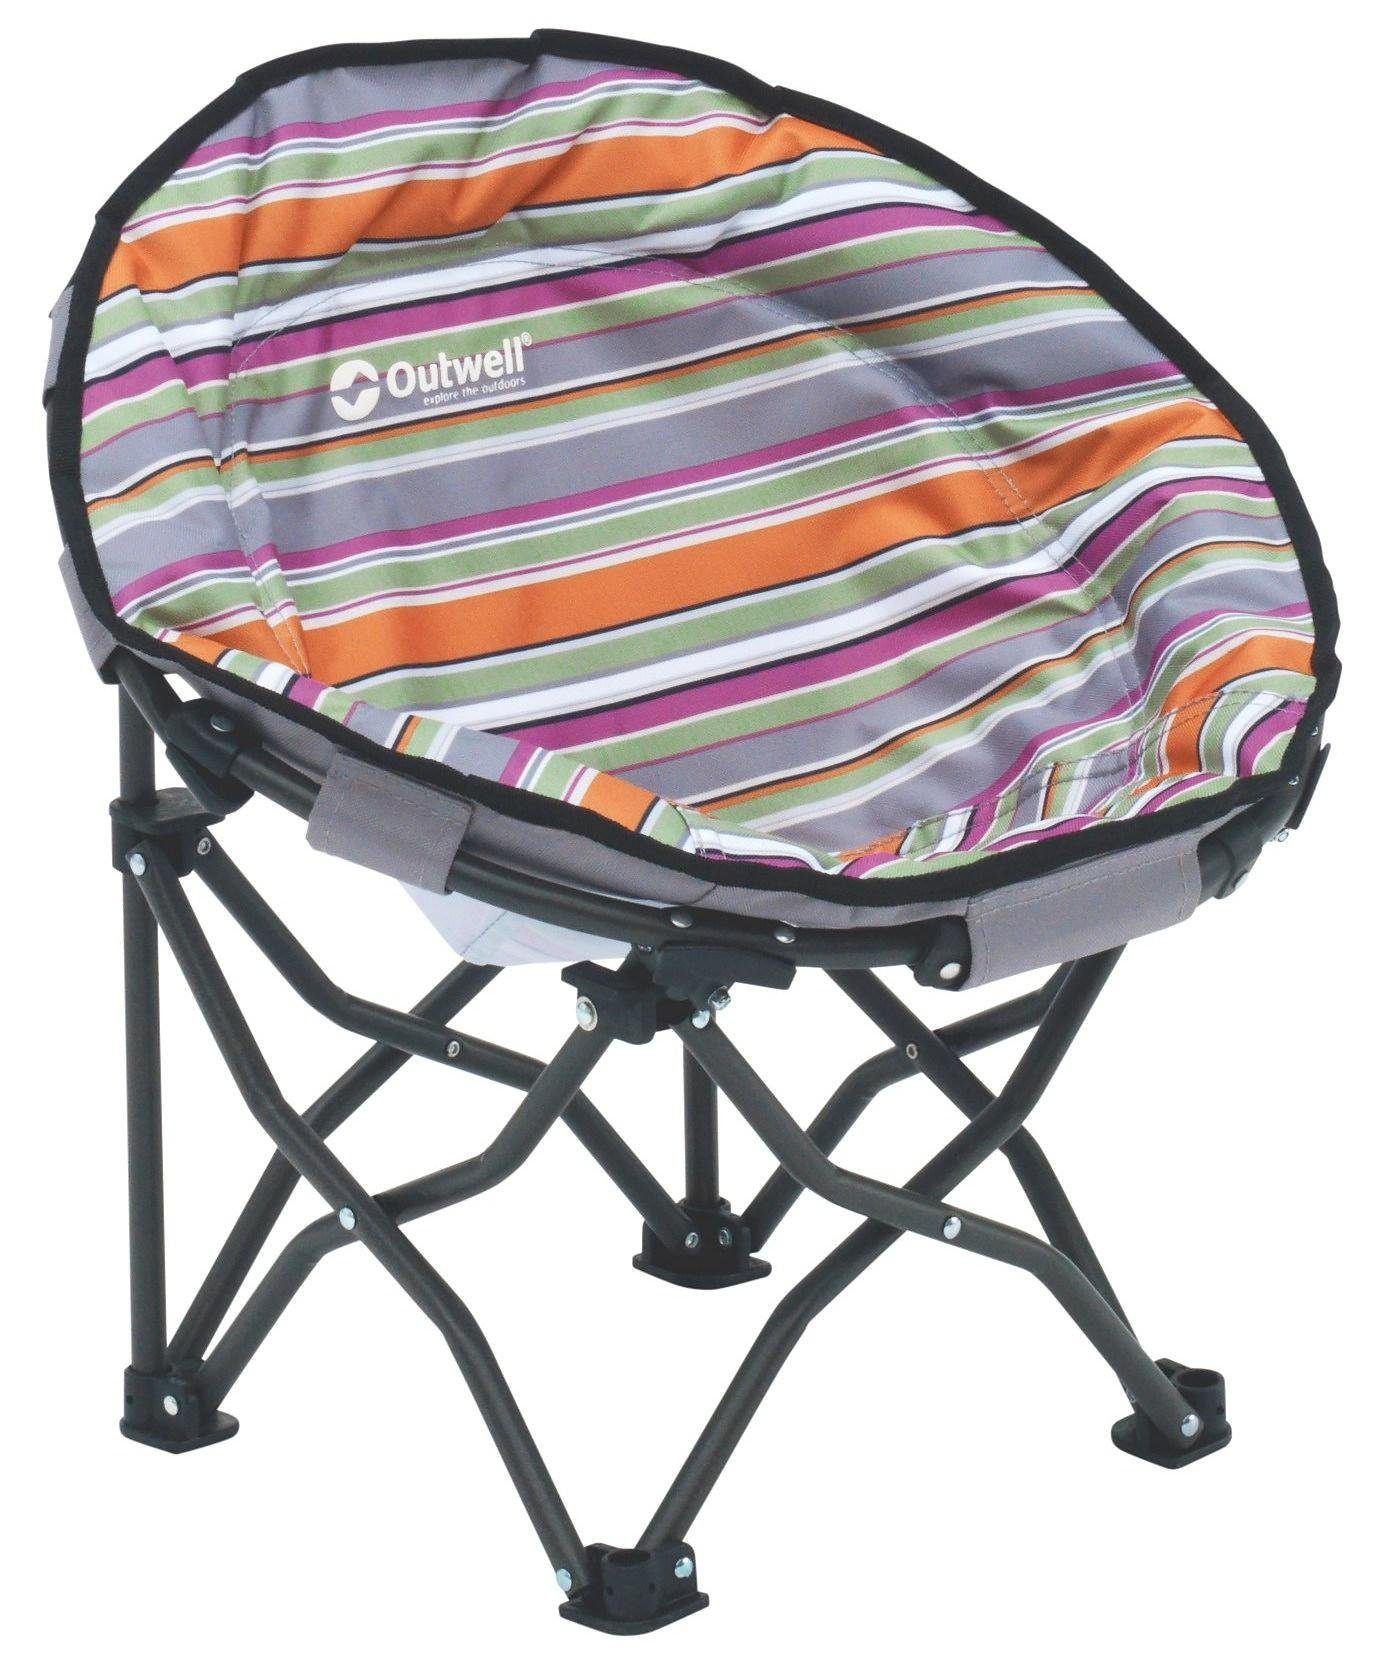 Outwell Camping-Stuhl »Outwell Trelew Summer Kids Folding Chair«